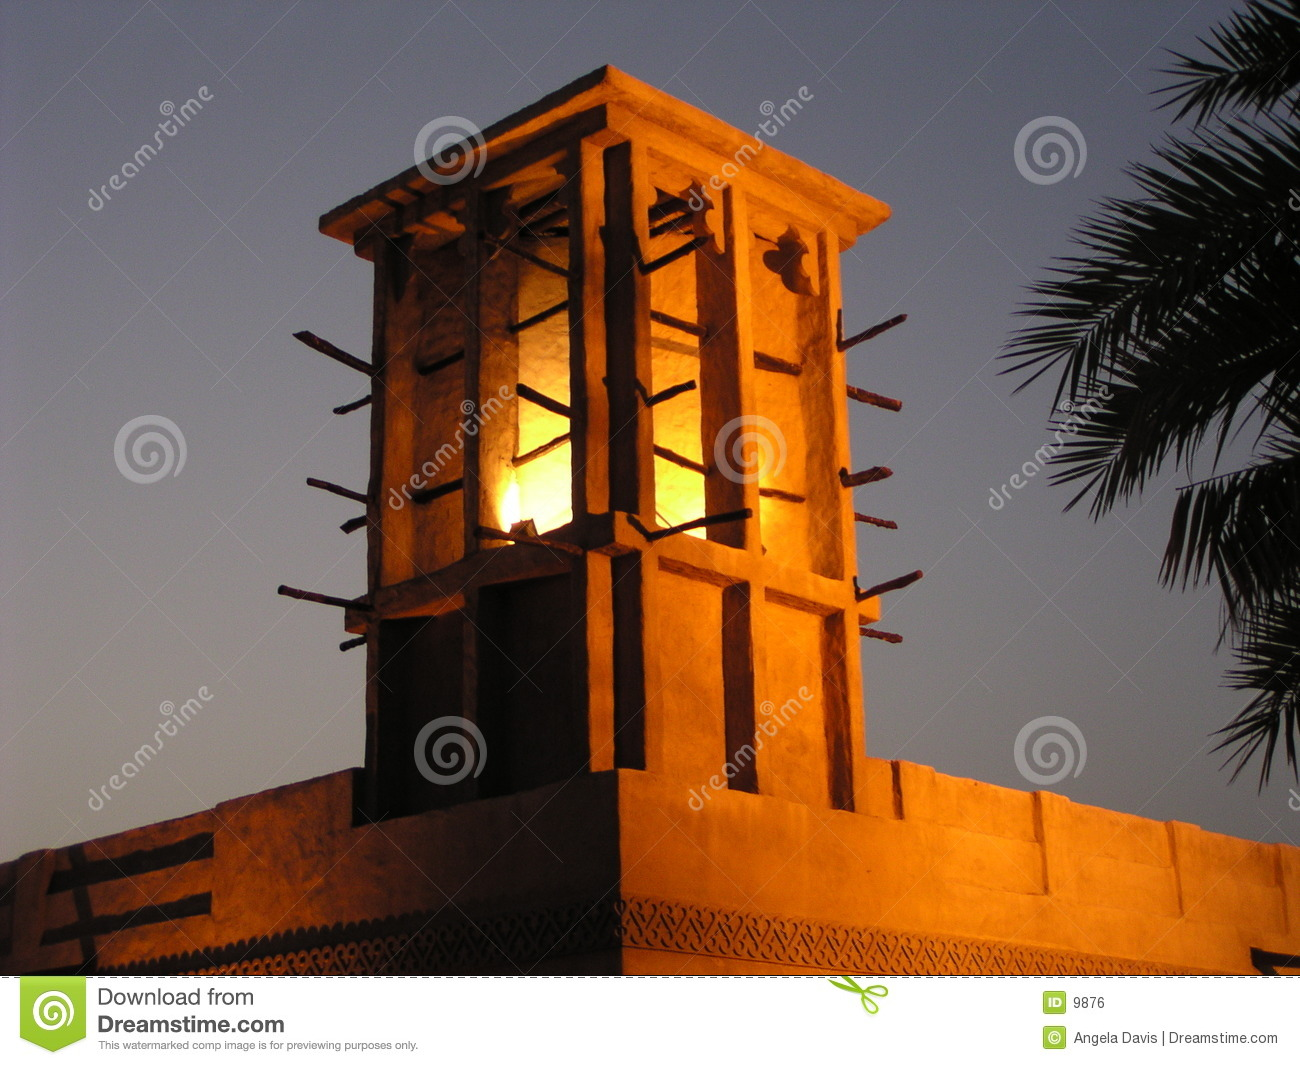 Wind Tower 1 (Dubai)